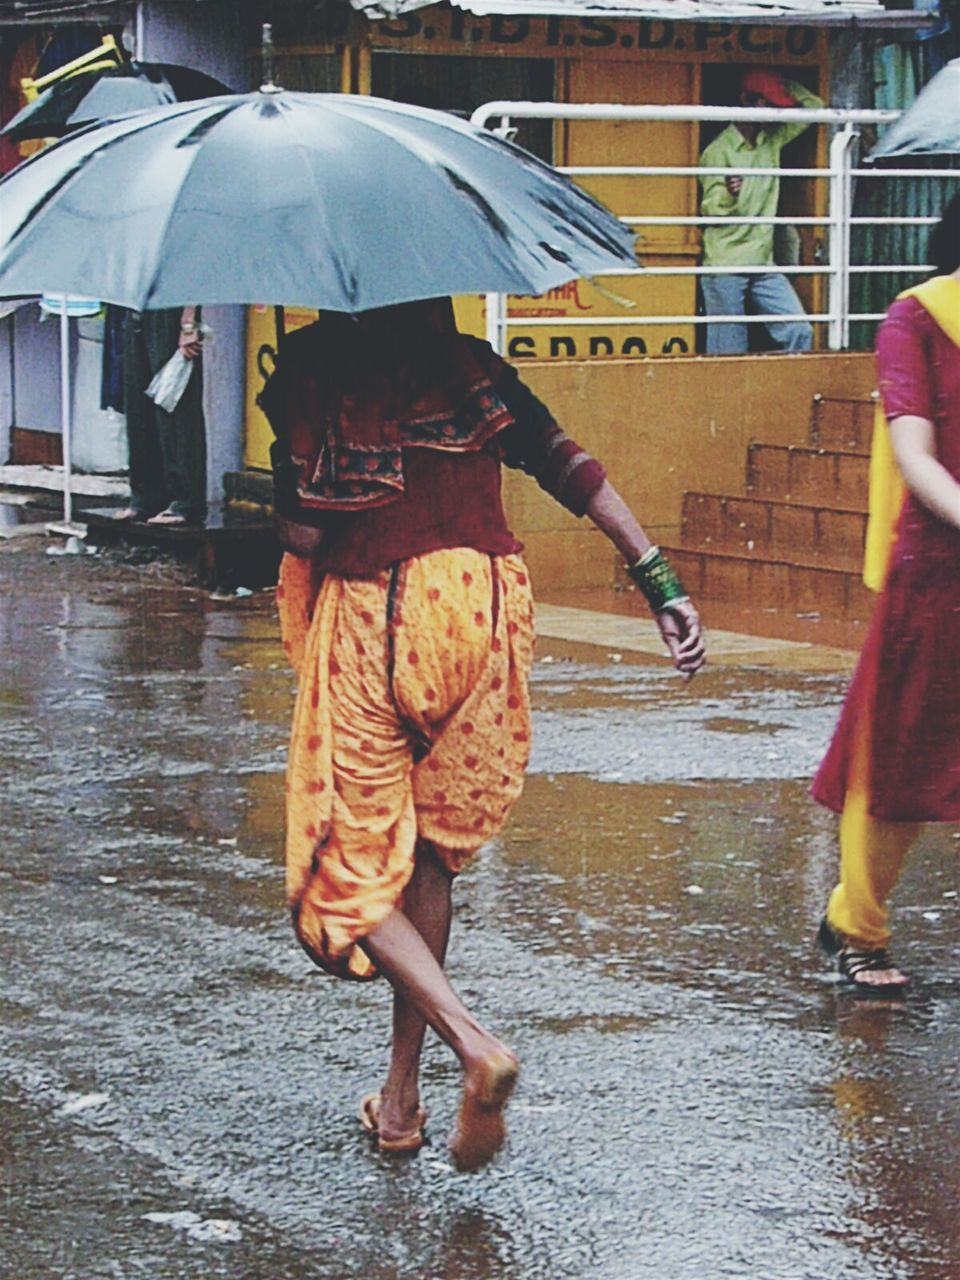 rain, rainy season, wet, water, weather, protection, walking, real people, street, outdoors, raindrop, two people, architecture, below, women, rear view, full length, lifestyles, men, built structure, under, leisure activity, day, togetherness, city, puddle, low section, adult, people